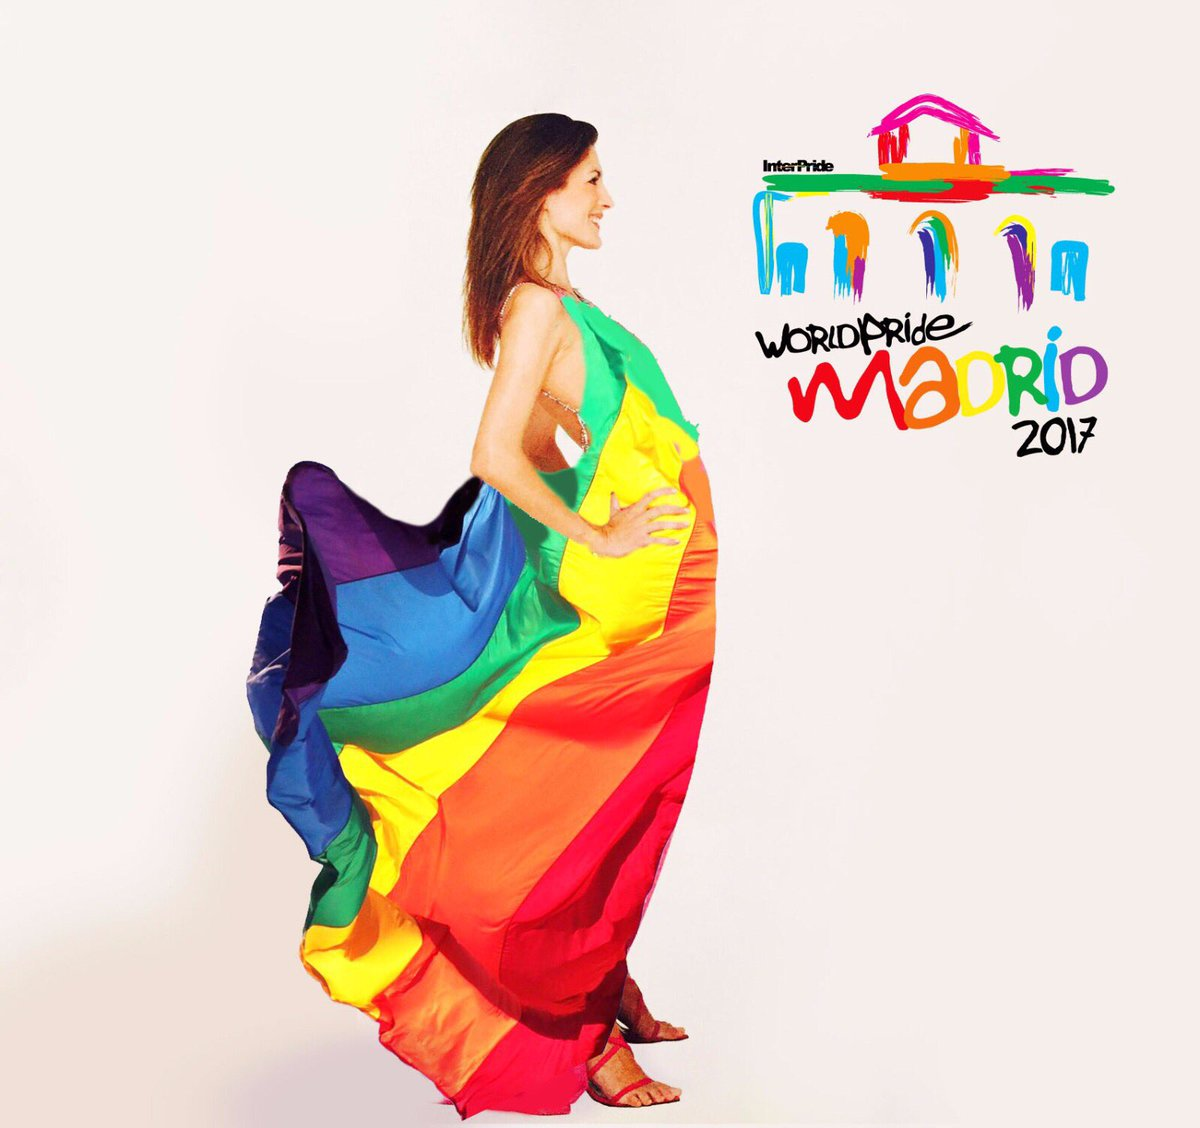 Feliz @WorldPride2017 #worldpridemadrid #VivaLaVida #BuenFinde #NocheD...